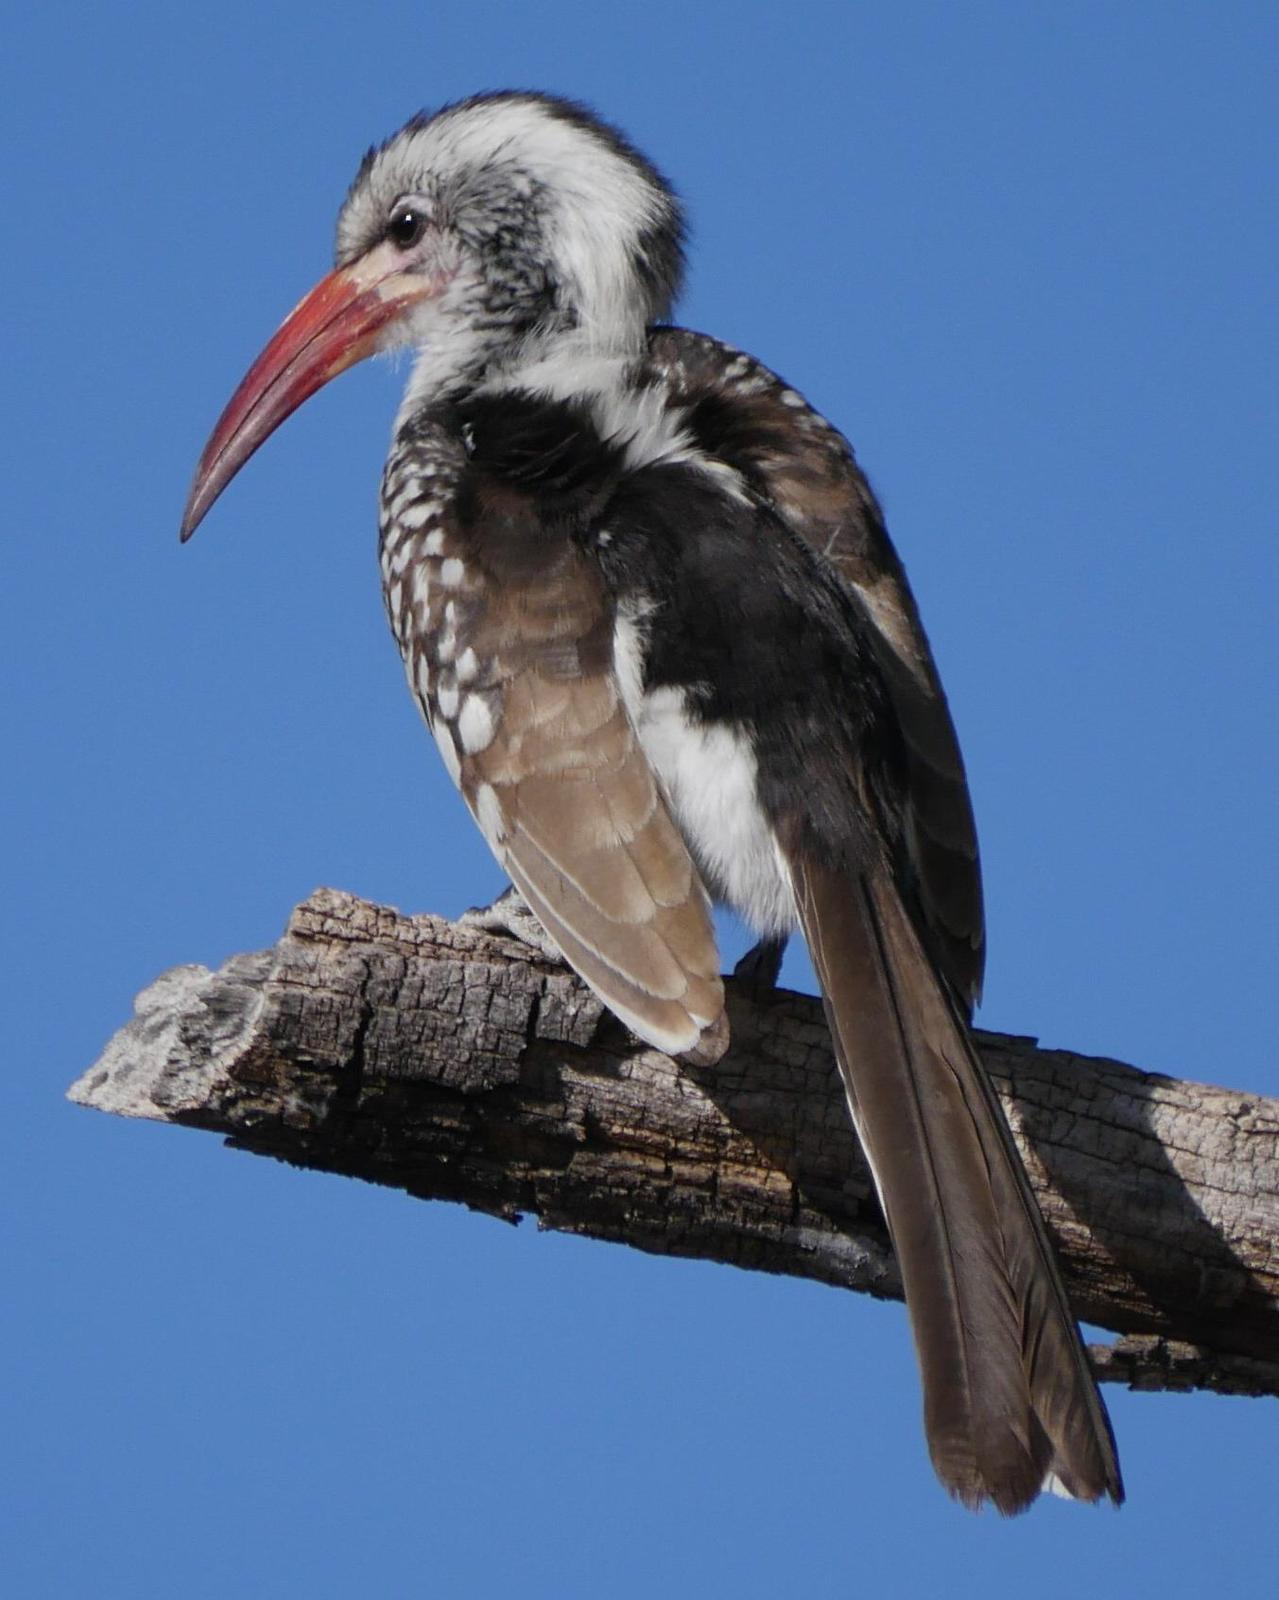 Southern Red-billed Hornbill Photo by Peter Lowe